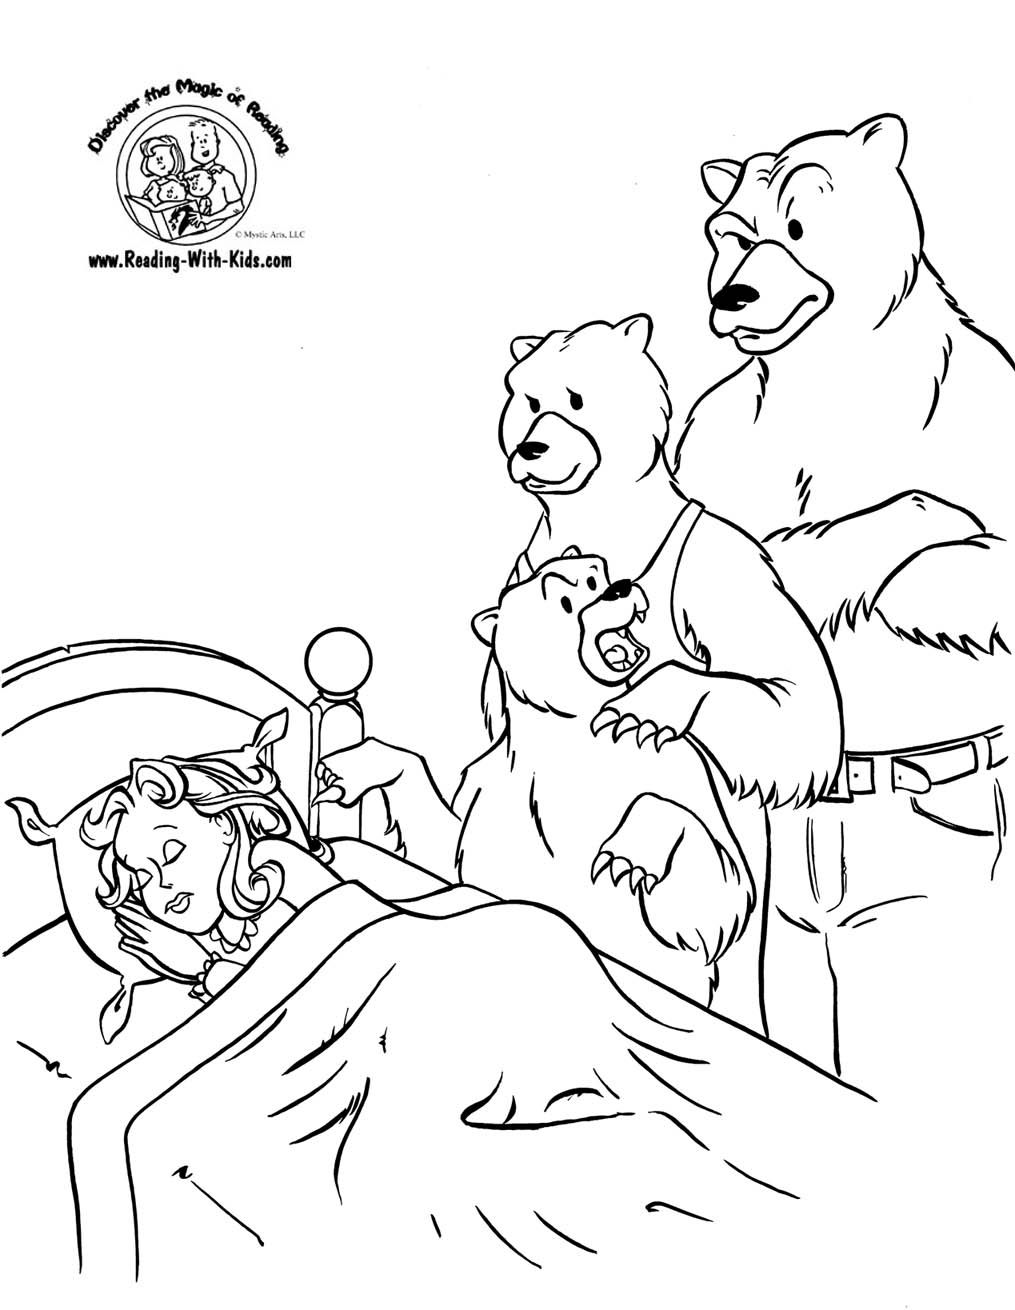 Colouring pages goldilocks and three bears - Goldilocks And The Three Bears Coloring Sheet Fairytale Fairytales